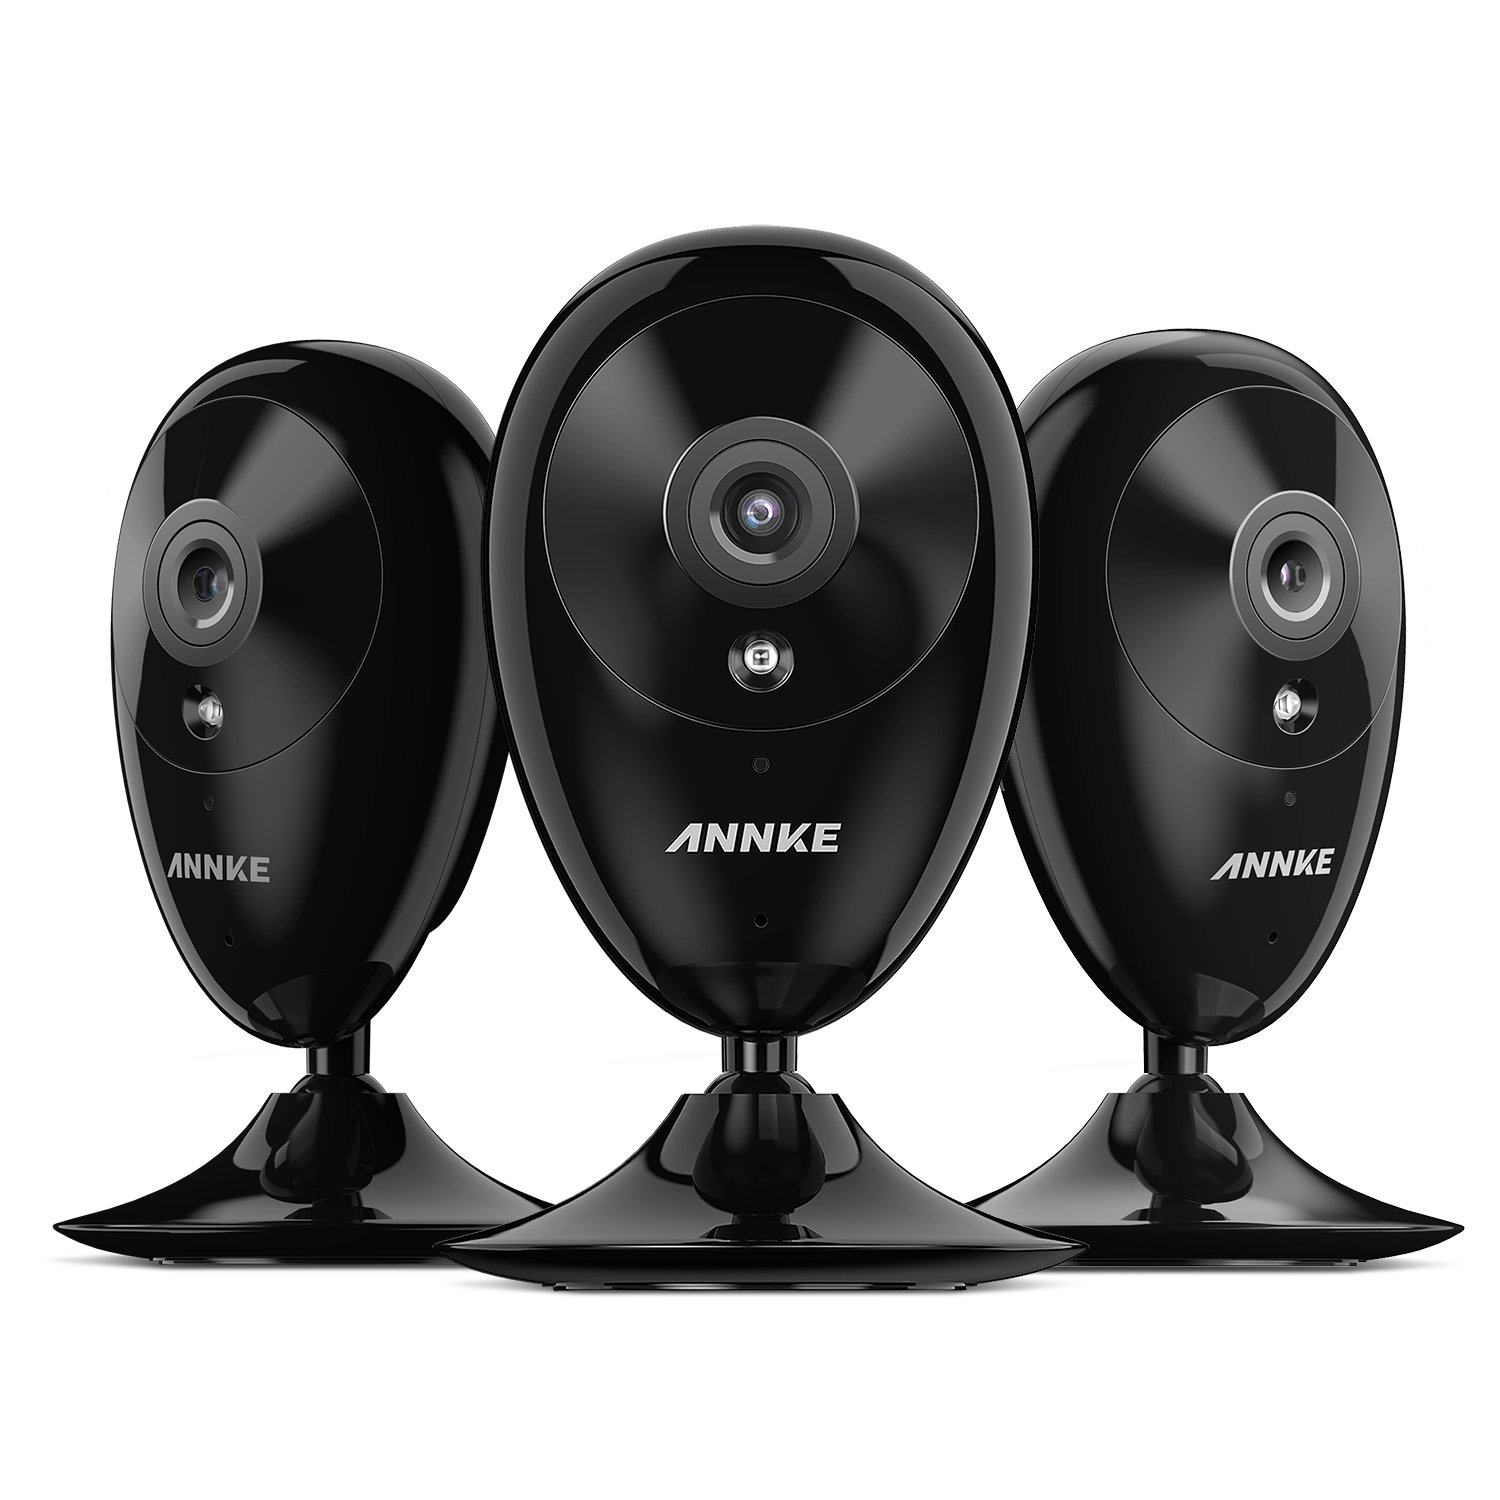 ANNKE 3-Pack Min IP Camra, Nova S 1080p HD Wi-Fi Home Video Monitoring Security Camera, Works with Alex, Cloud Service Available